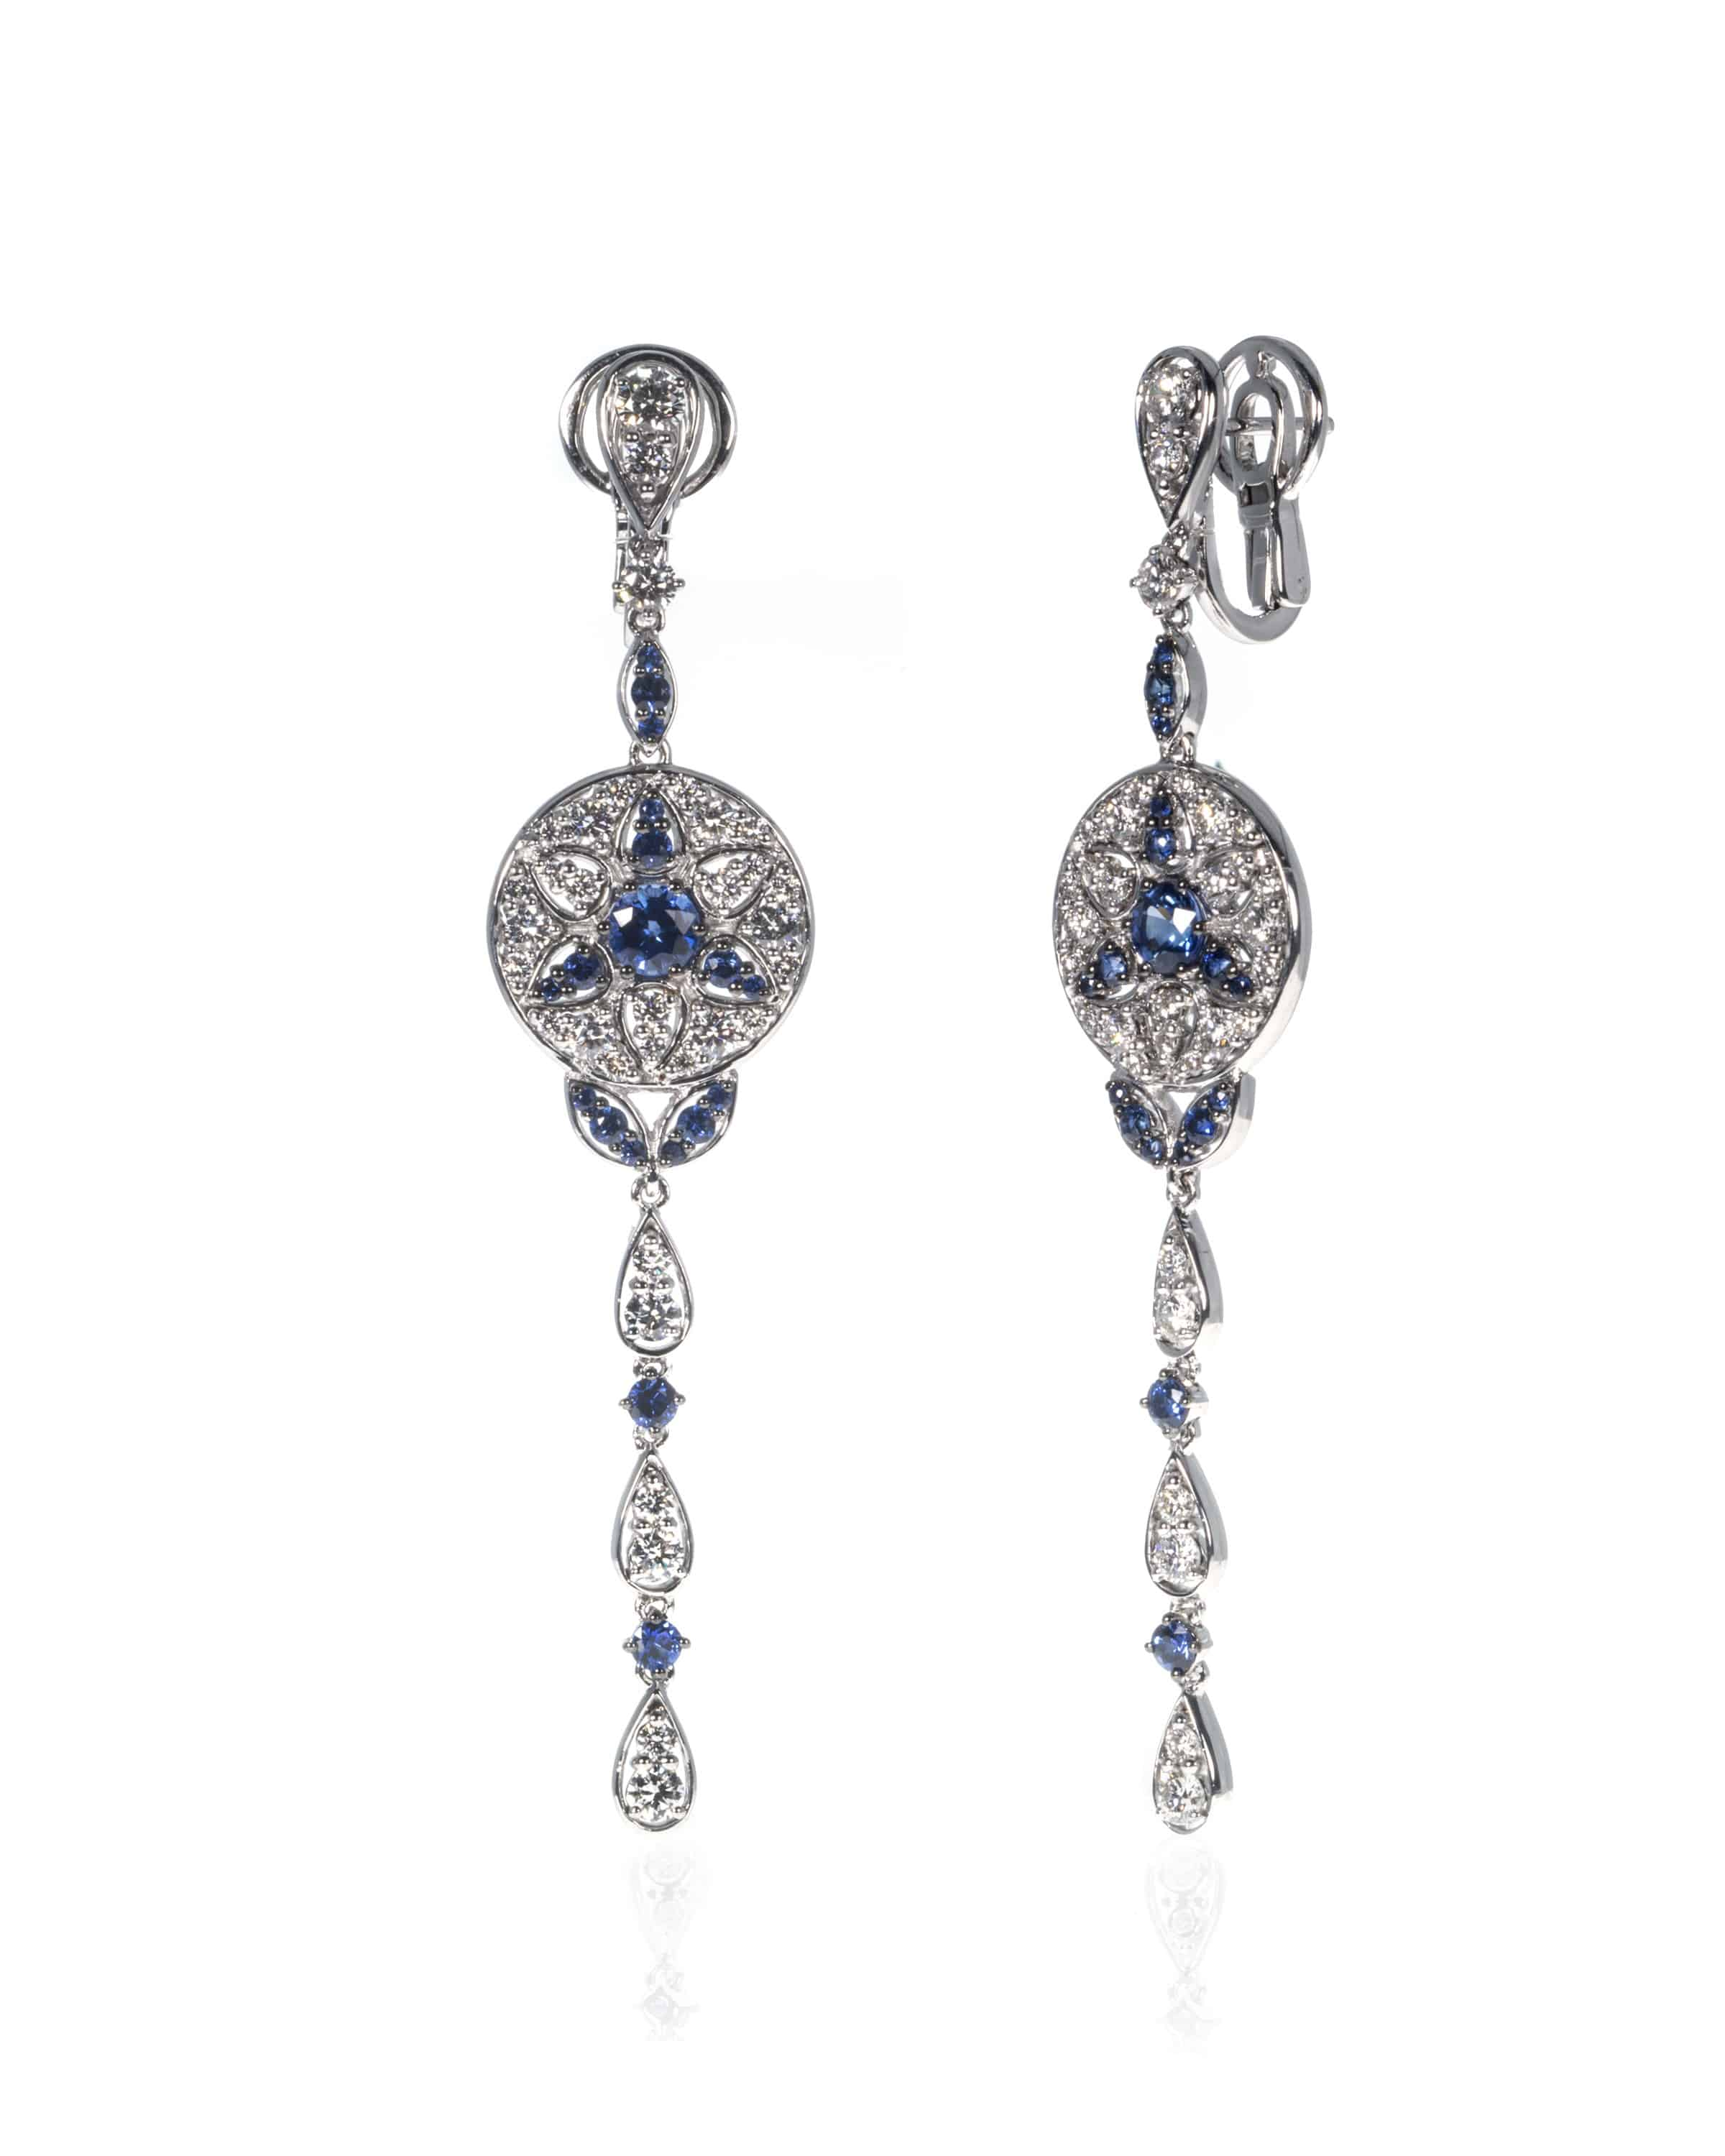 Crivelli 18k White Gold Diamond And Sapphire Earrings 372-2389-32520700